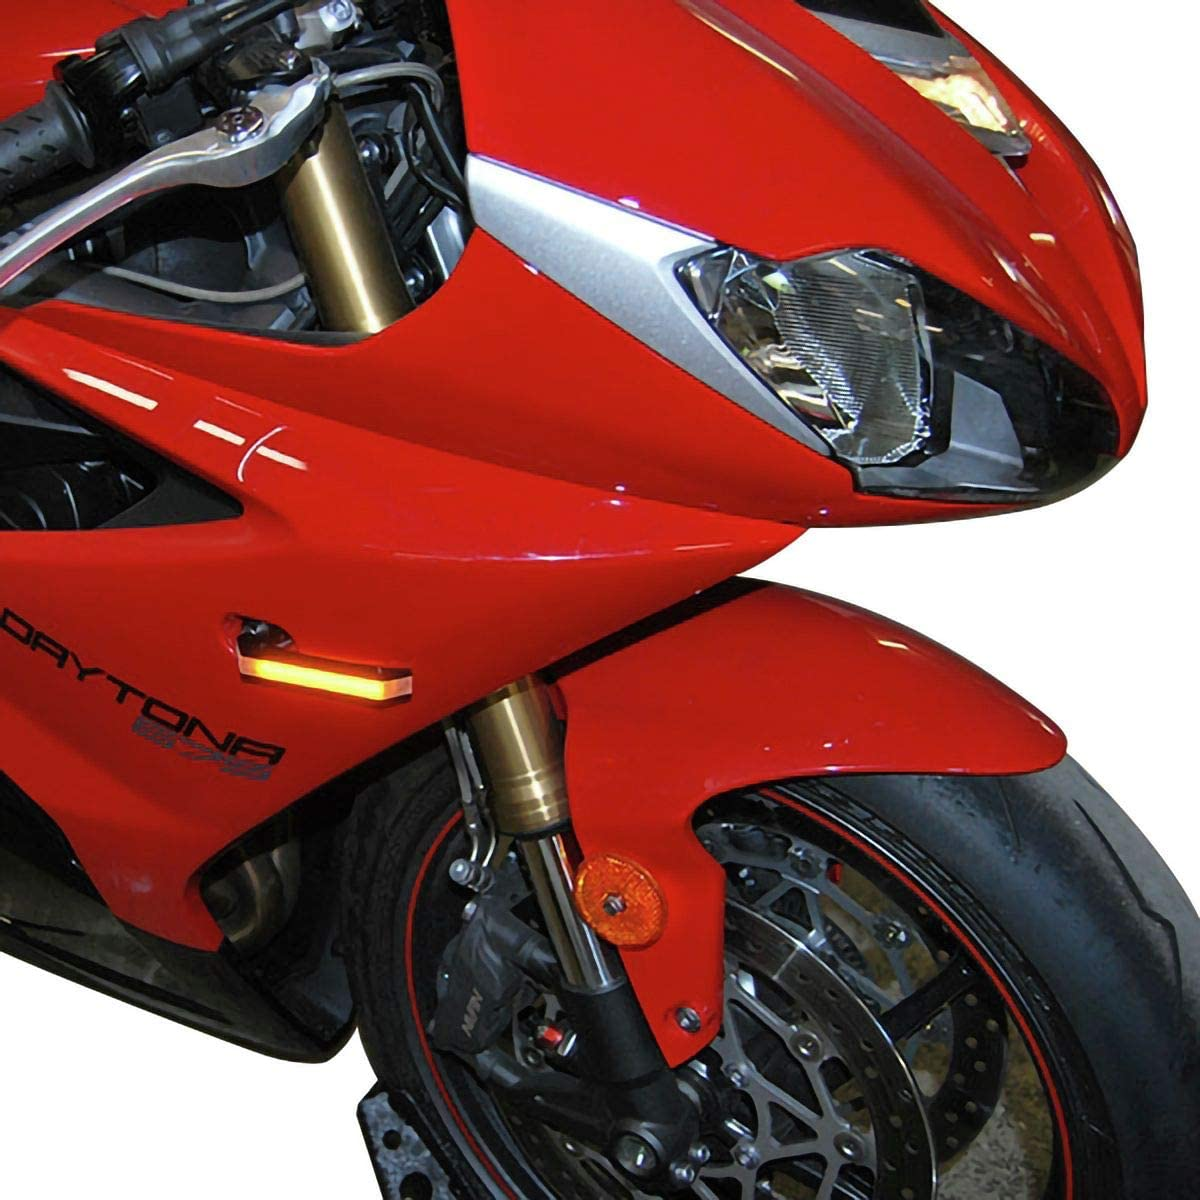 Triumph Daytona 675 Front Turn - 2021 autumn and winter new New Jacksonville Mall Rage Cycles Signals